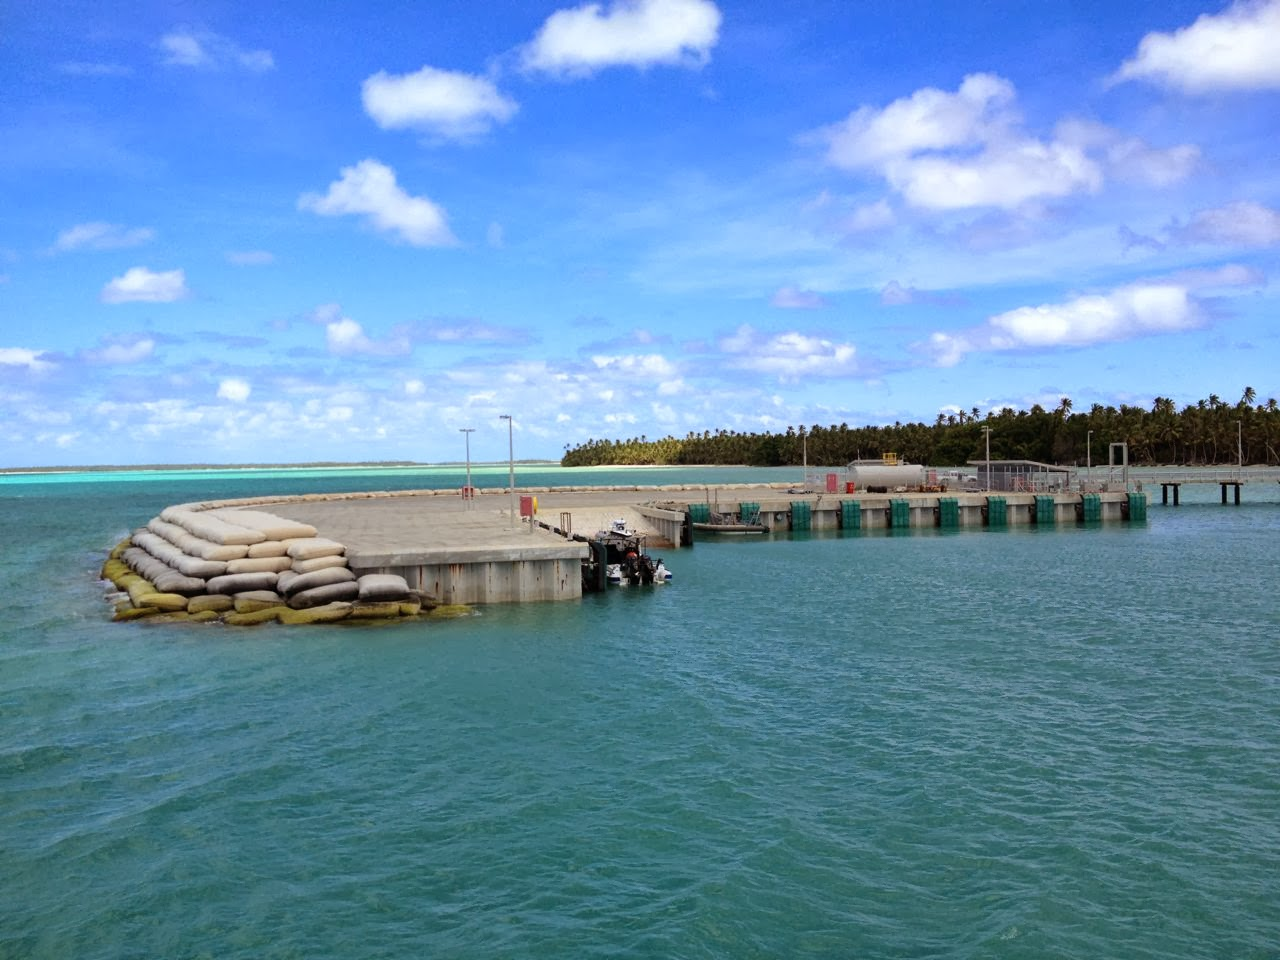 Container shipping at small, isolated Islands: Cocos (Keeling) Islands